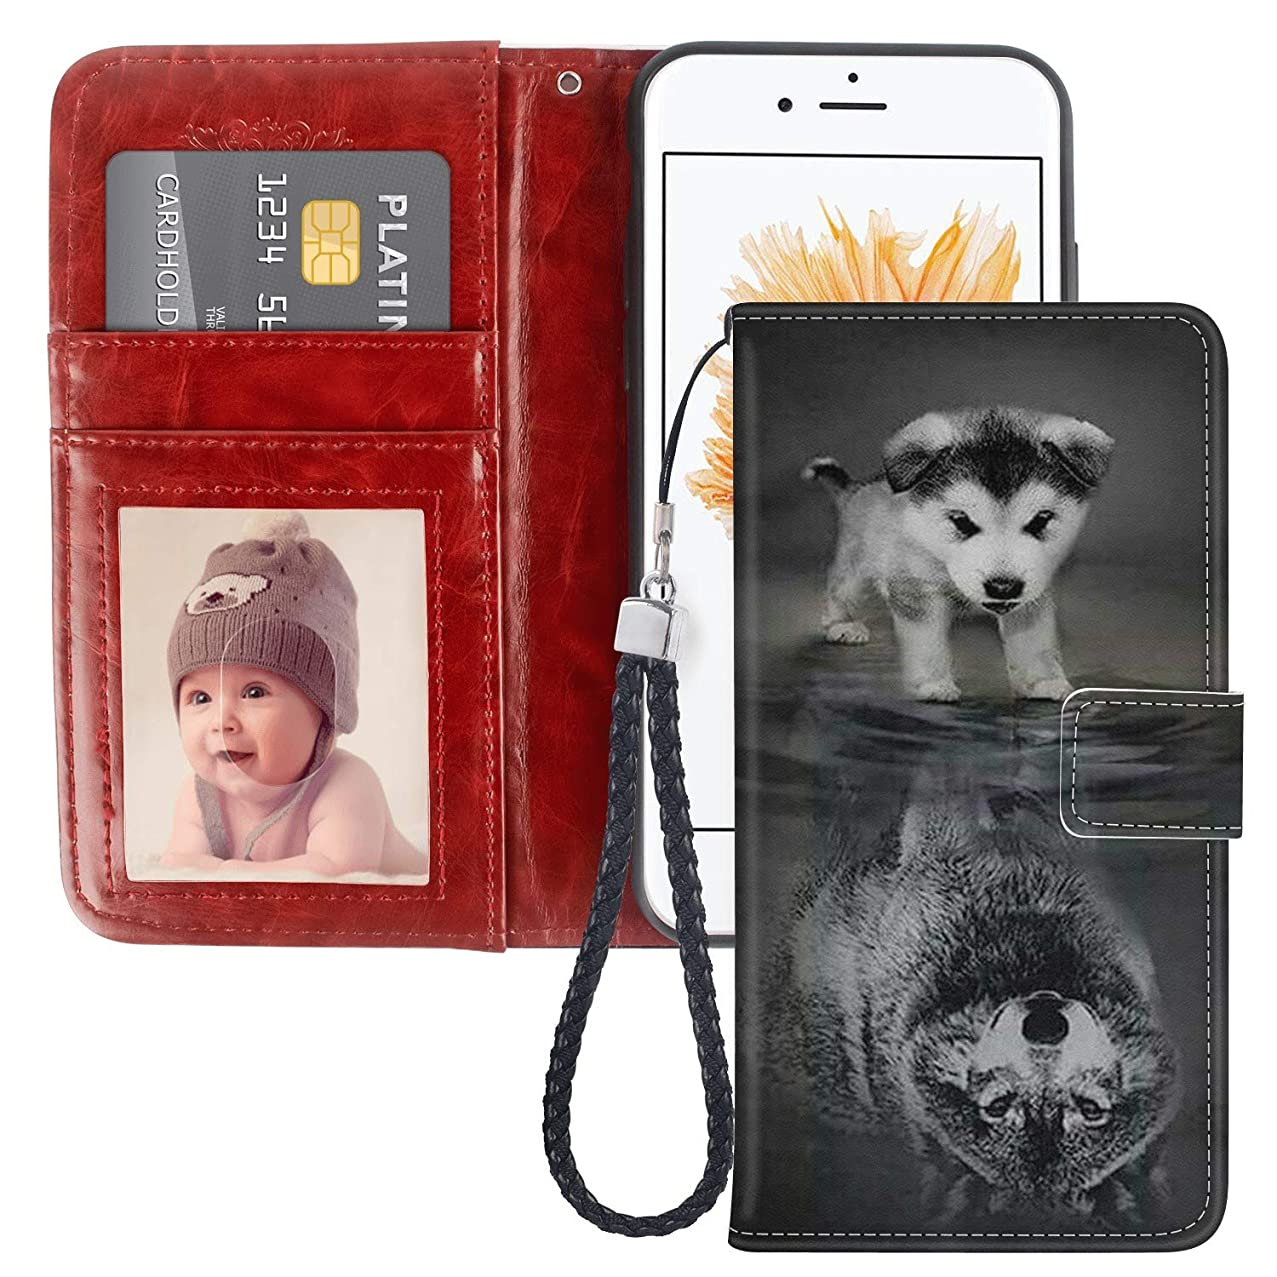 Dog Shadow iPhone 5 5S SE Wallet Case JQLOVE PU Leather Flip Magnetic Clasp Multi-Card Slot Wristlet Phone Case for iPhone 5 5S SE Dog Shadow